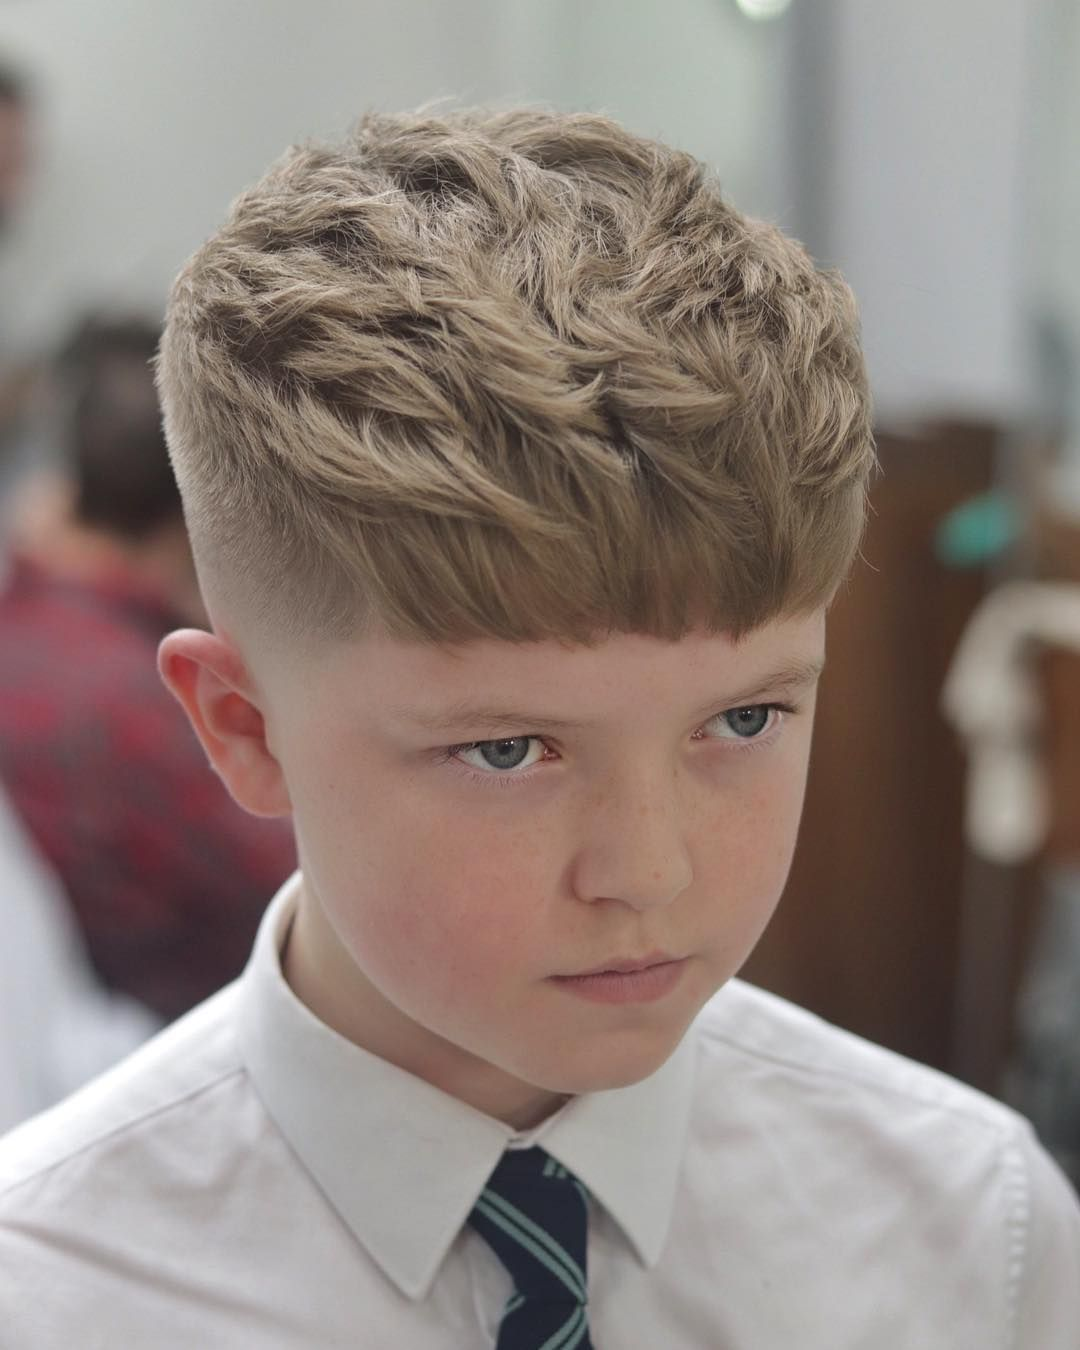 50 Coolest Short Haircuts For Smart School Boys Boy Haircuts Short Boys Haircuts Boy Hairstyles